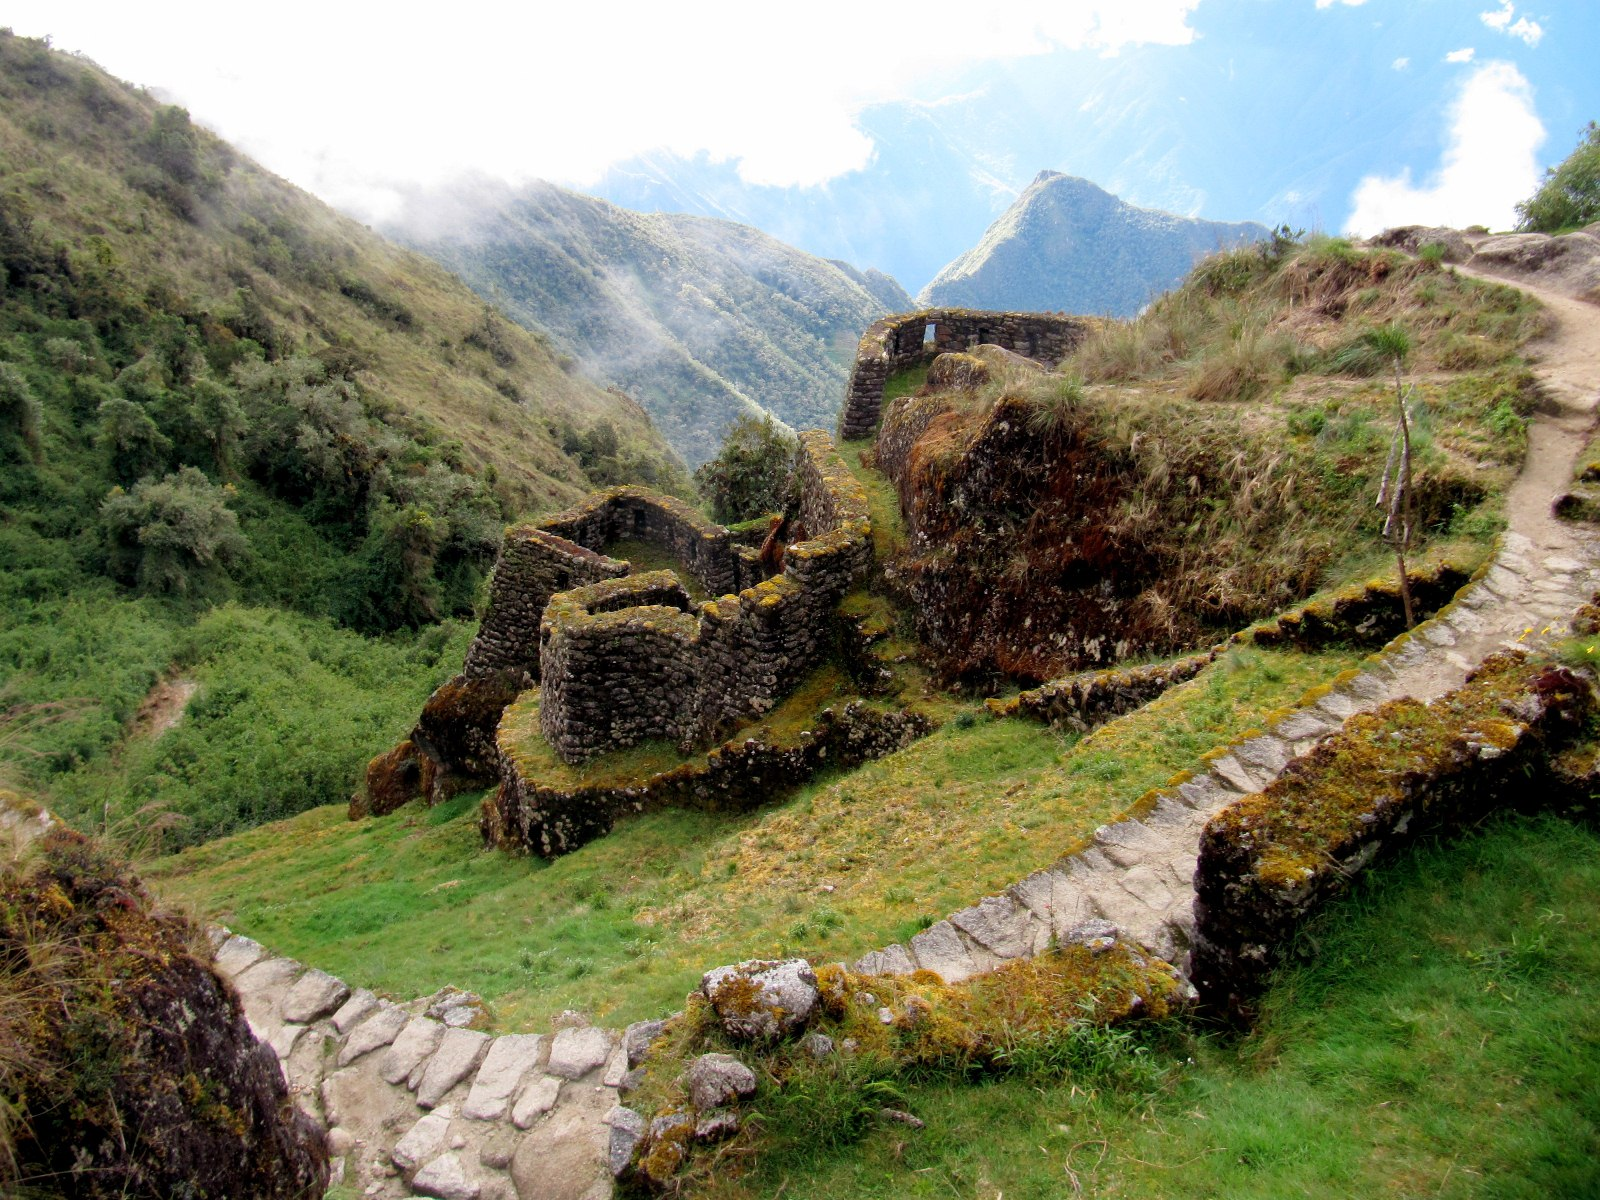 Inca trail photo gallery History of the Qhapaq an Inca Trail Information